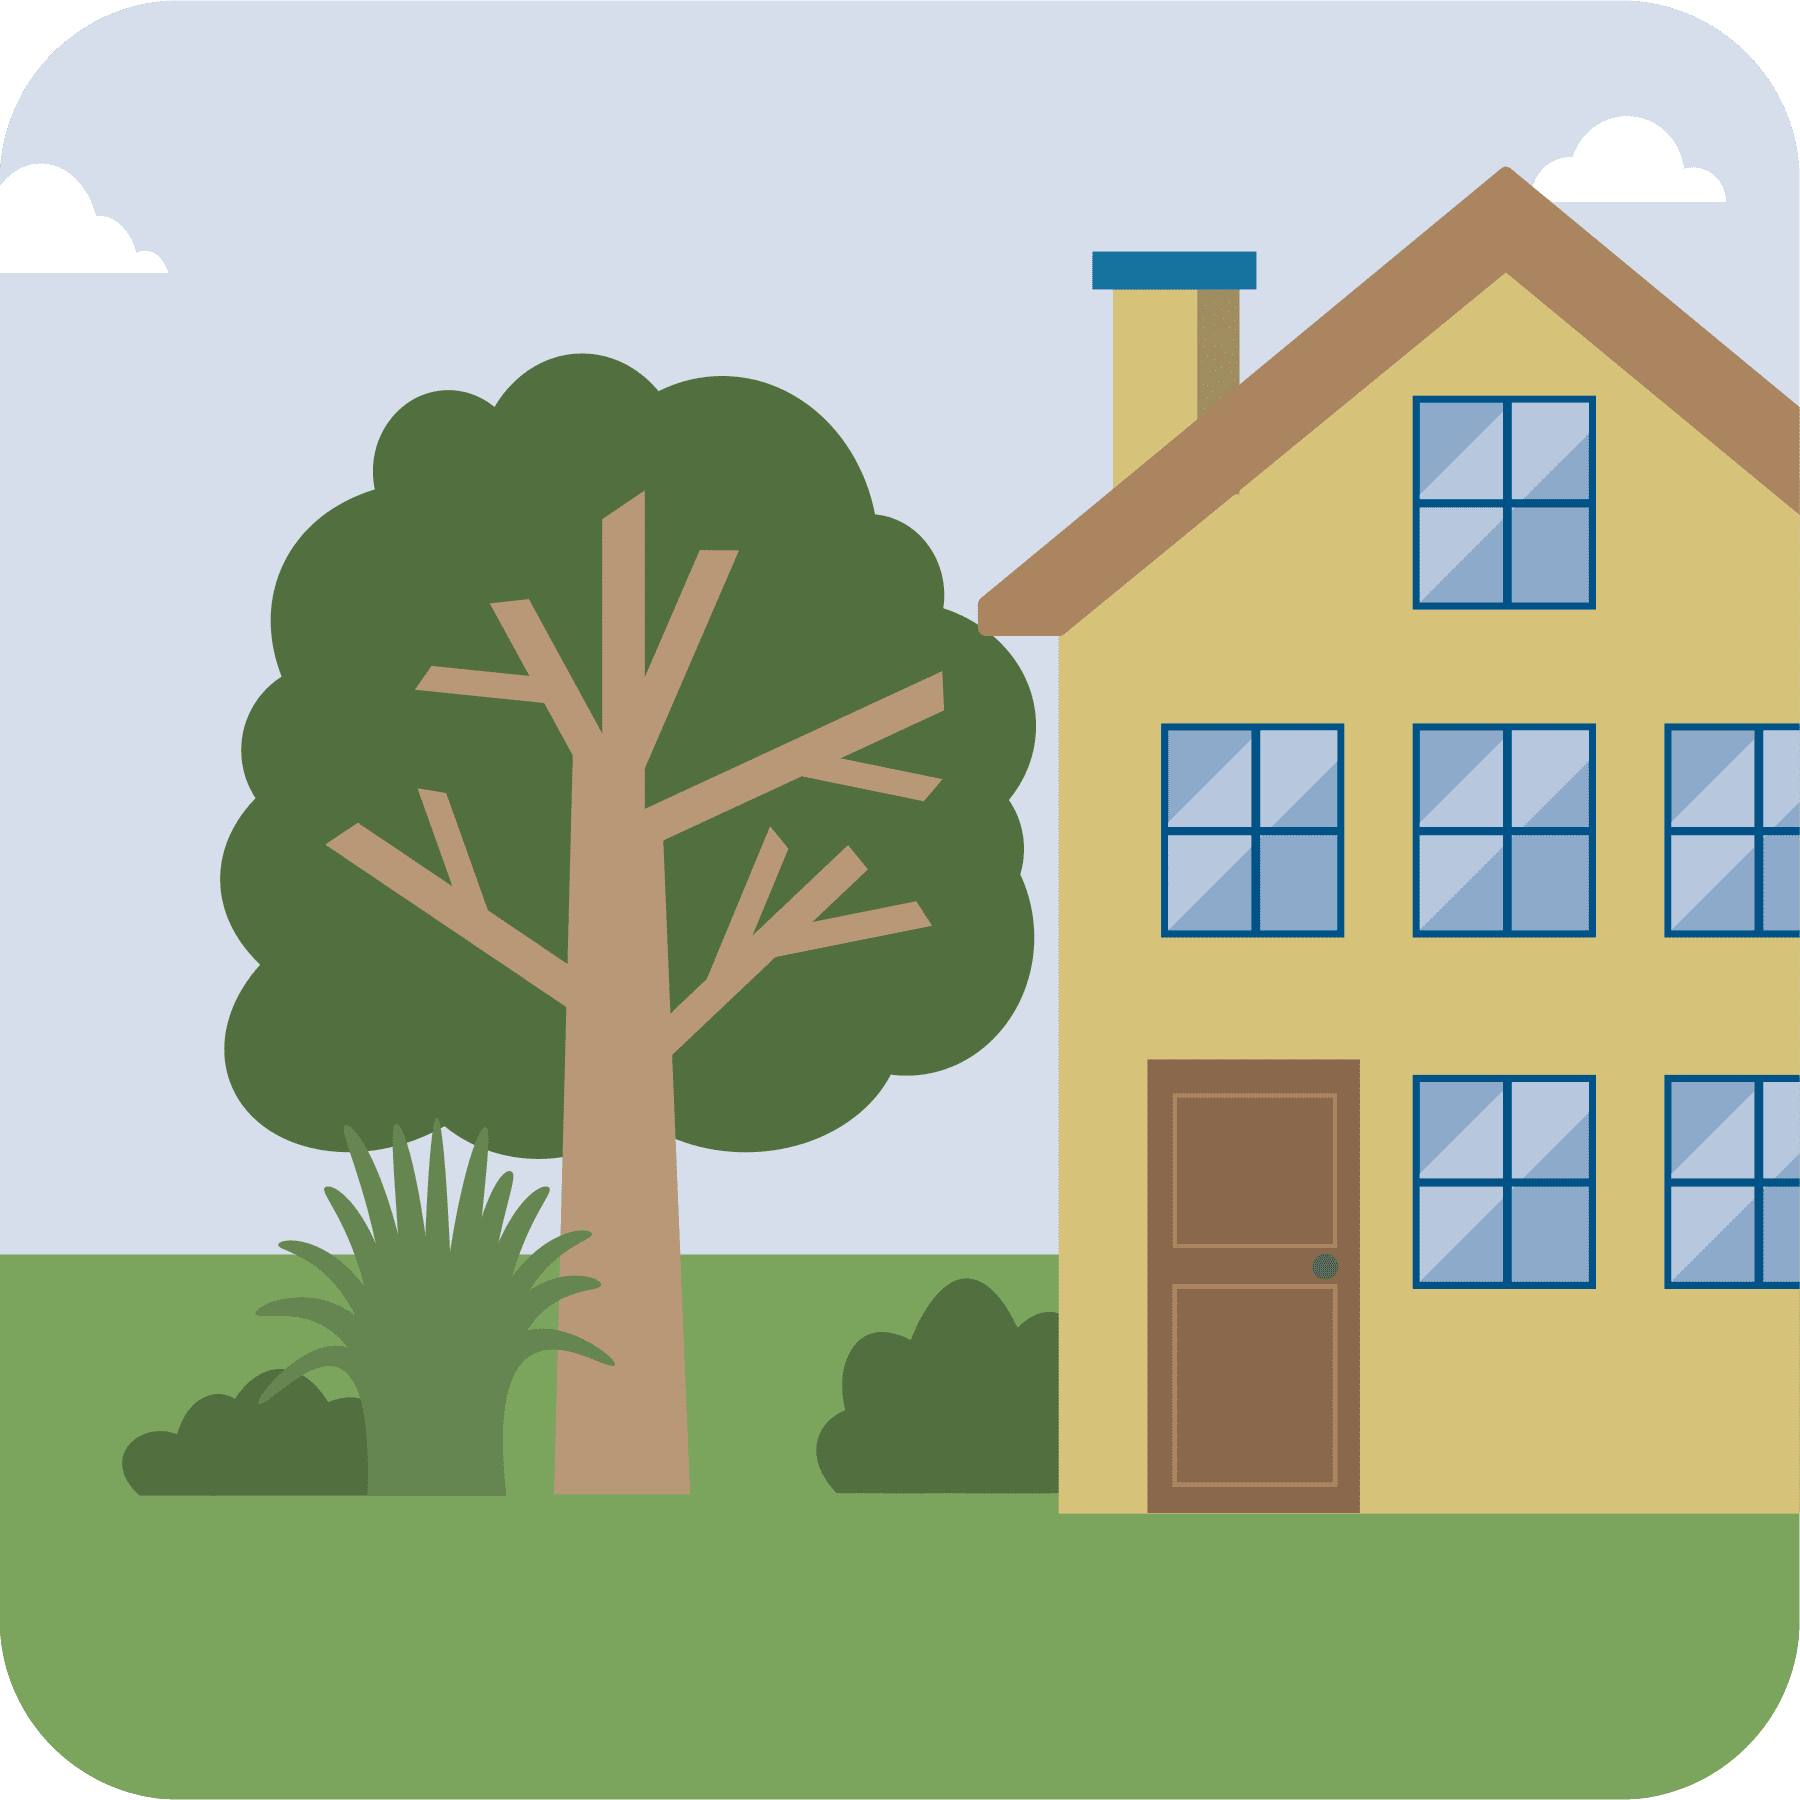 Illustration of a house and yard with a large tree and bushes.